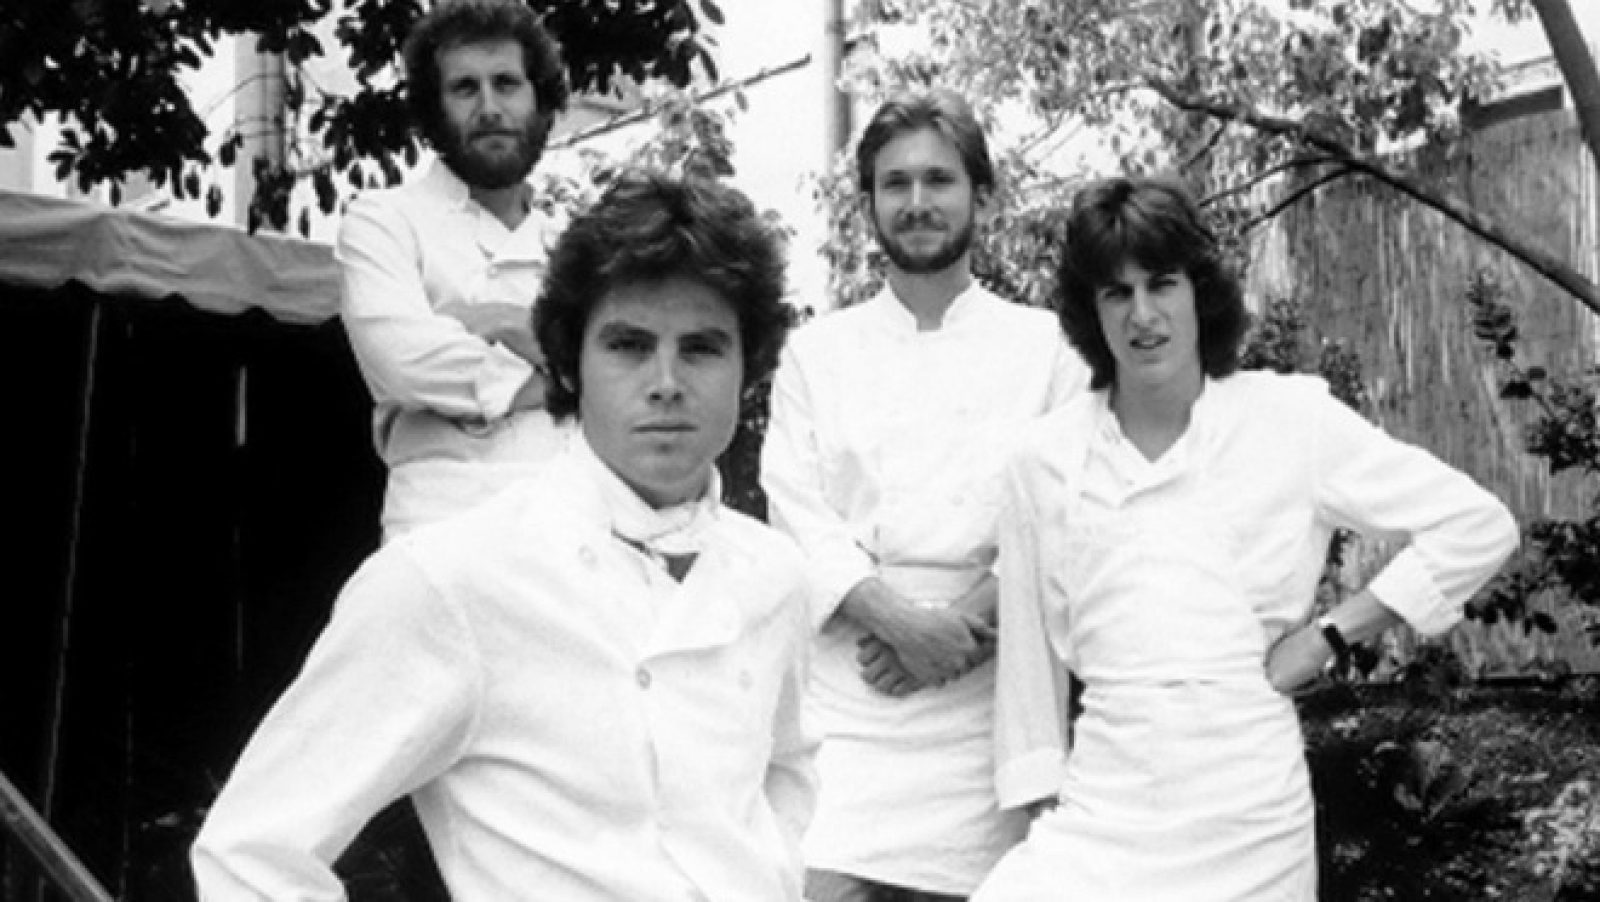 Chefs, Drugs and Rock & Roll: Misfits, Hippies and Celebrity Chefs